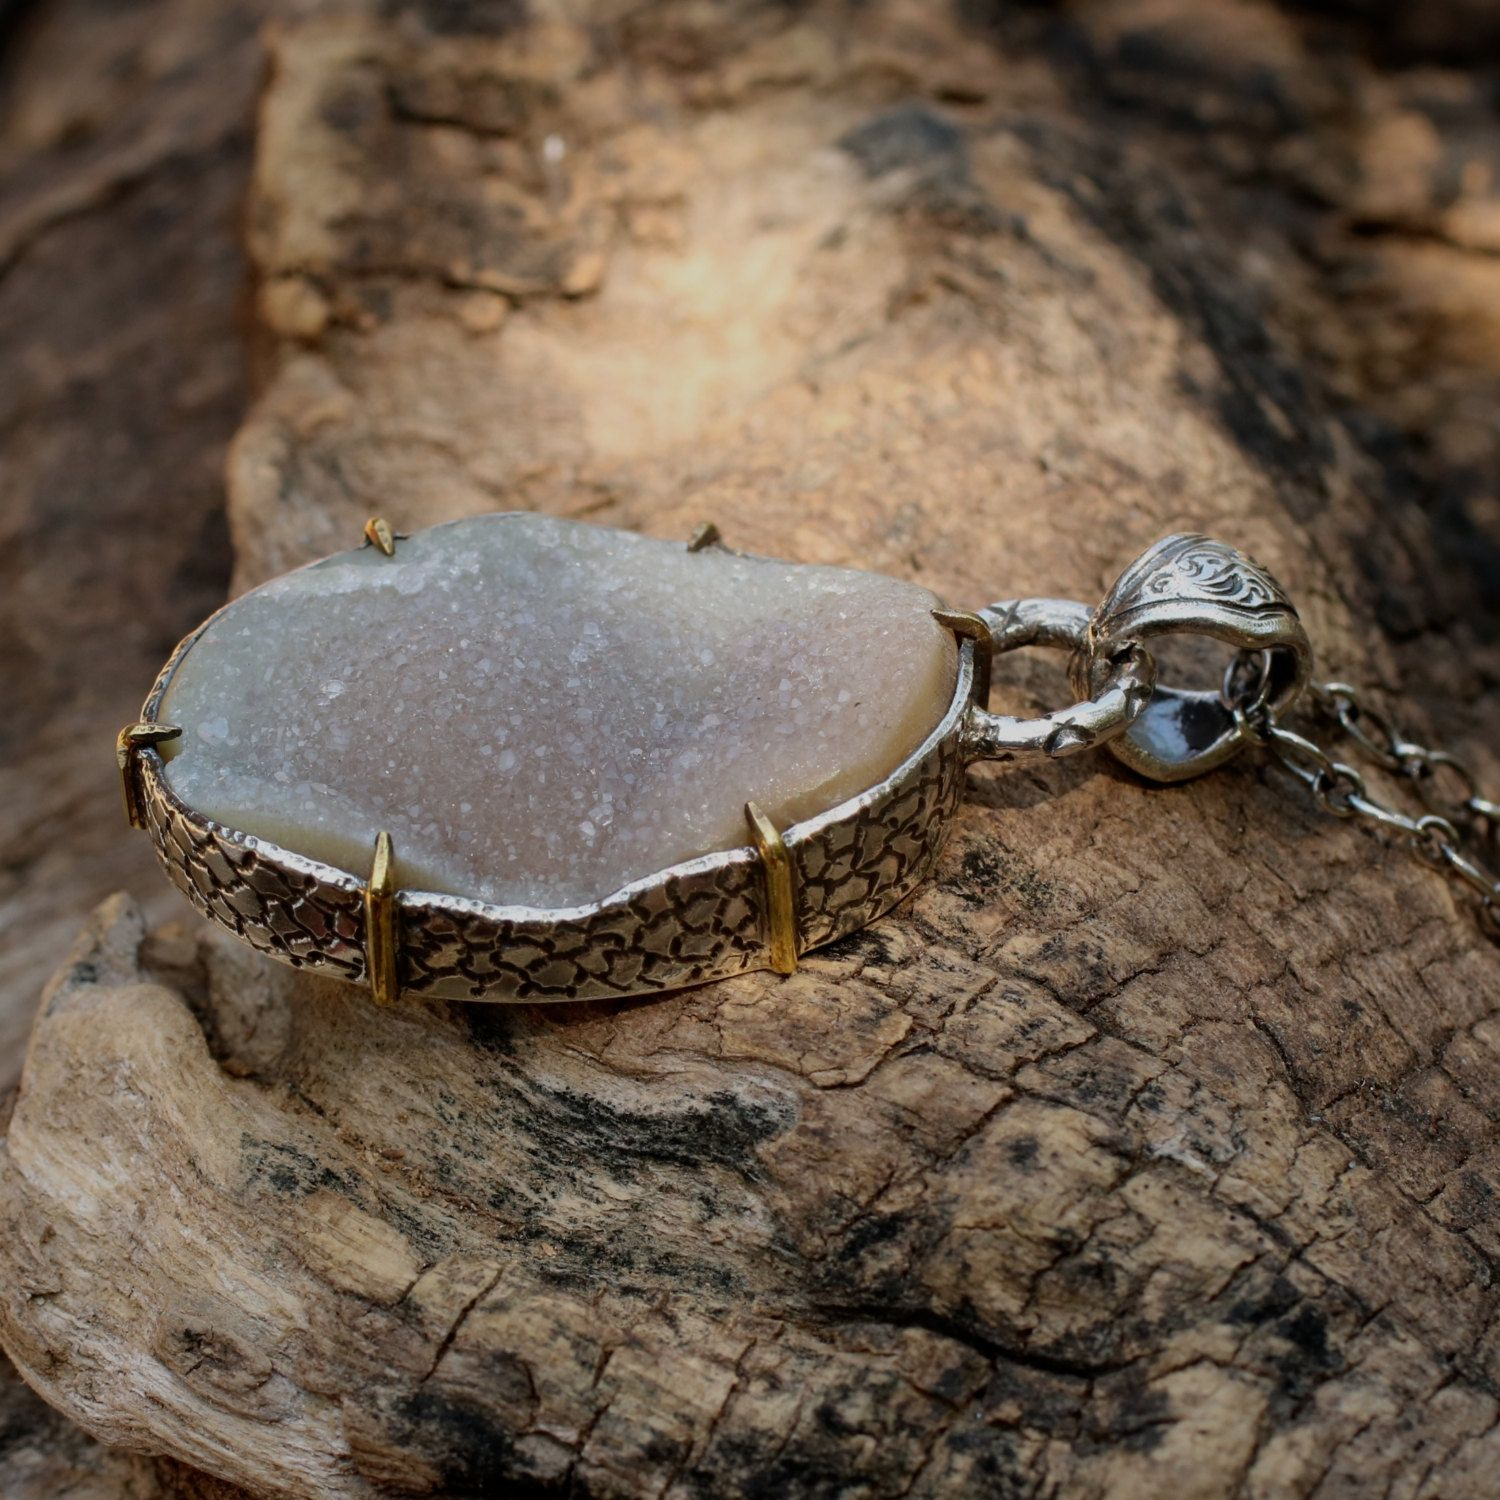 Oval cut druzy gemstone pendant necklace with hand engraved details oval cut druzy gemstone pendant necklace with hand engraved details and silver chain aloadofball Gallery